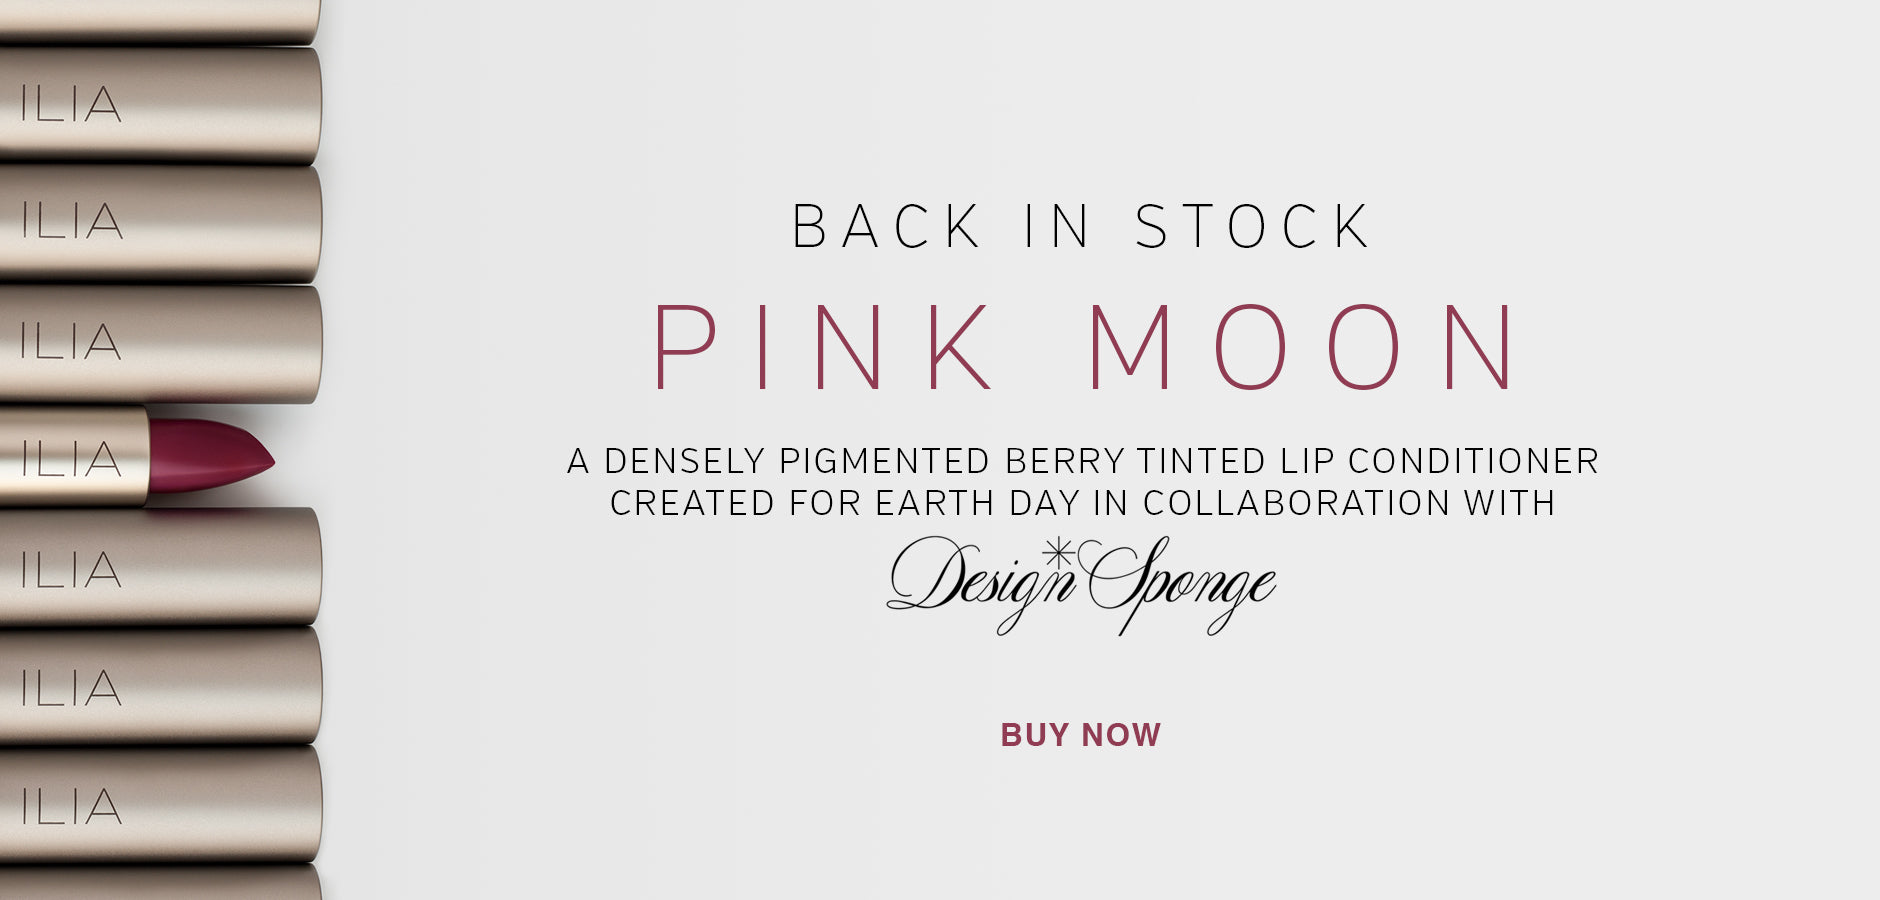 Pink Moon Back In Stock